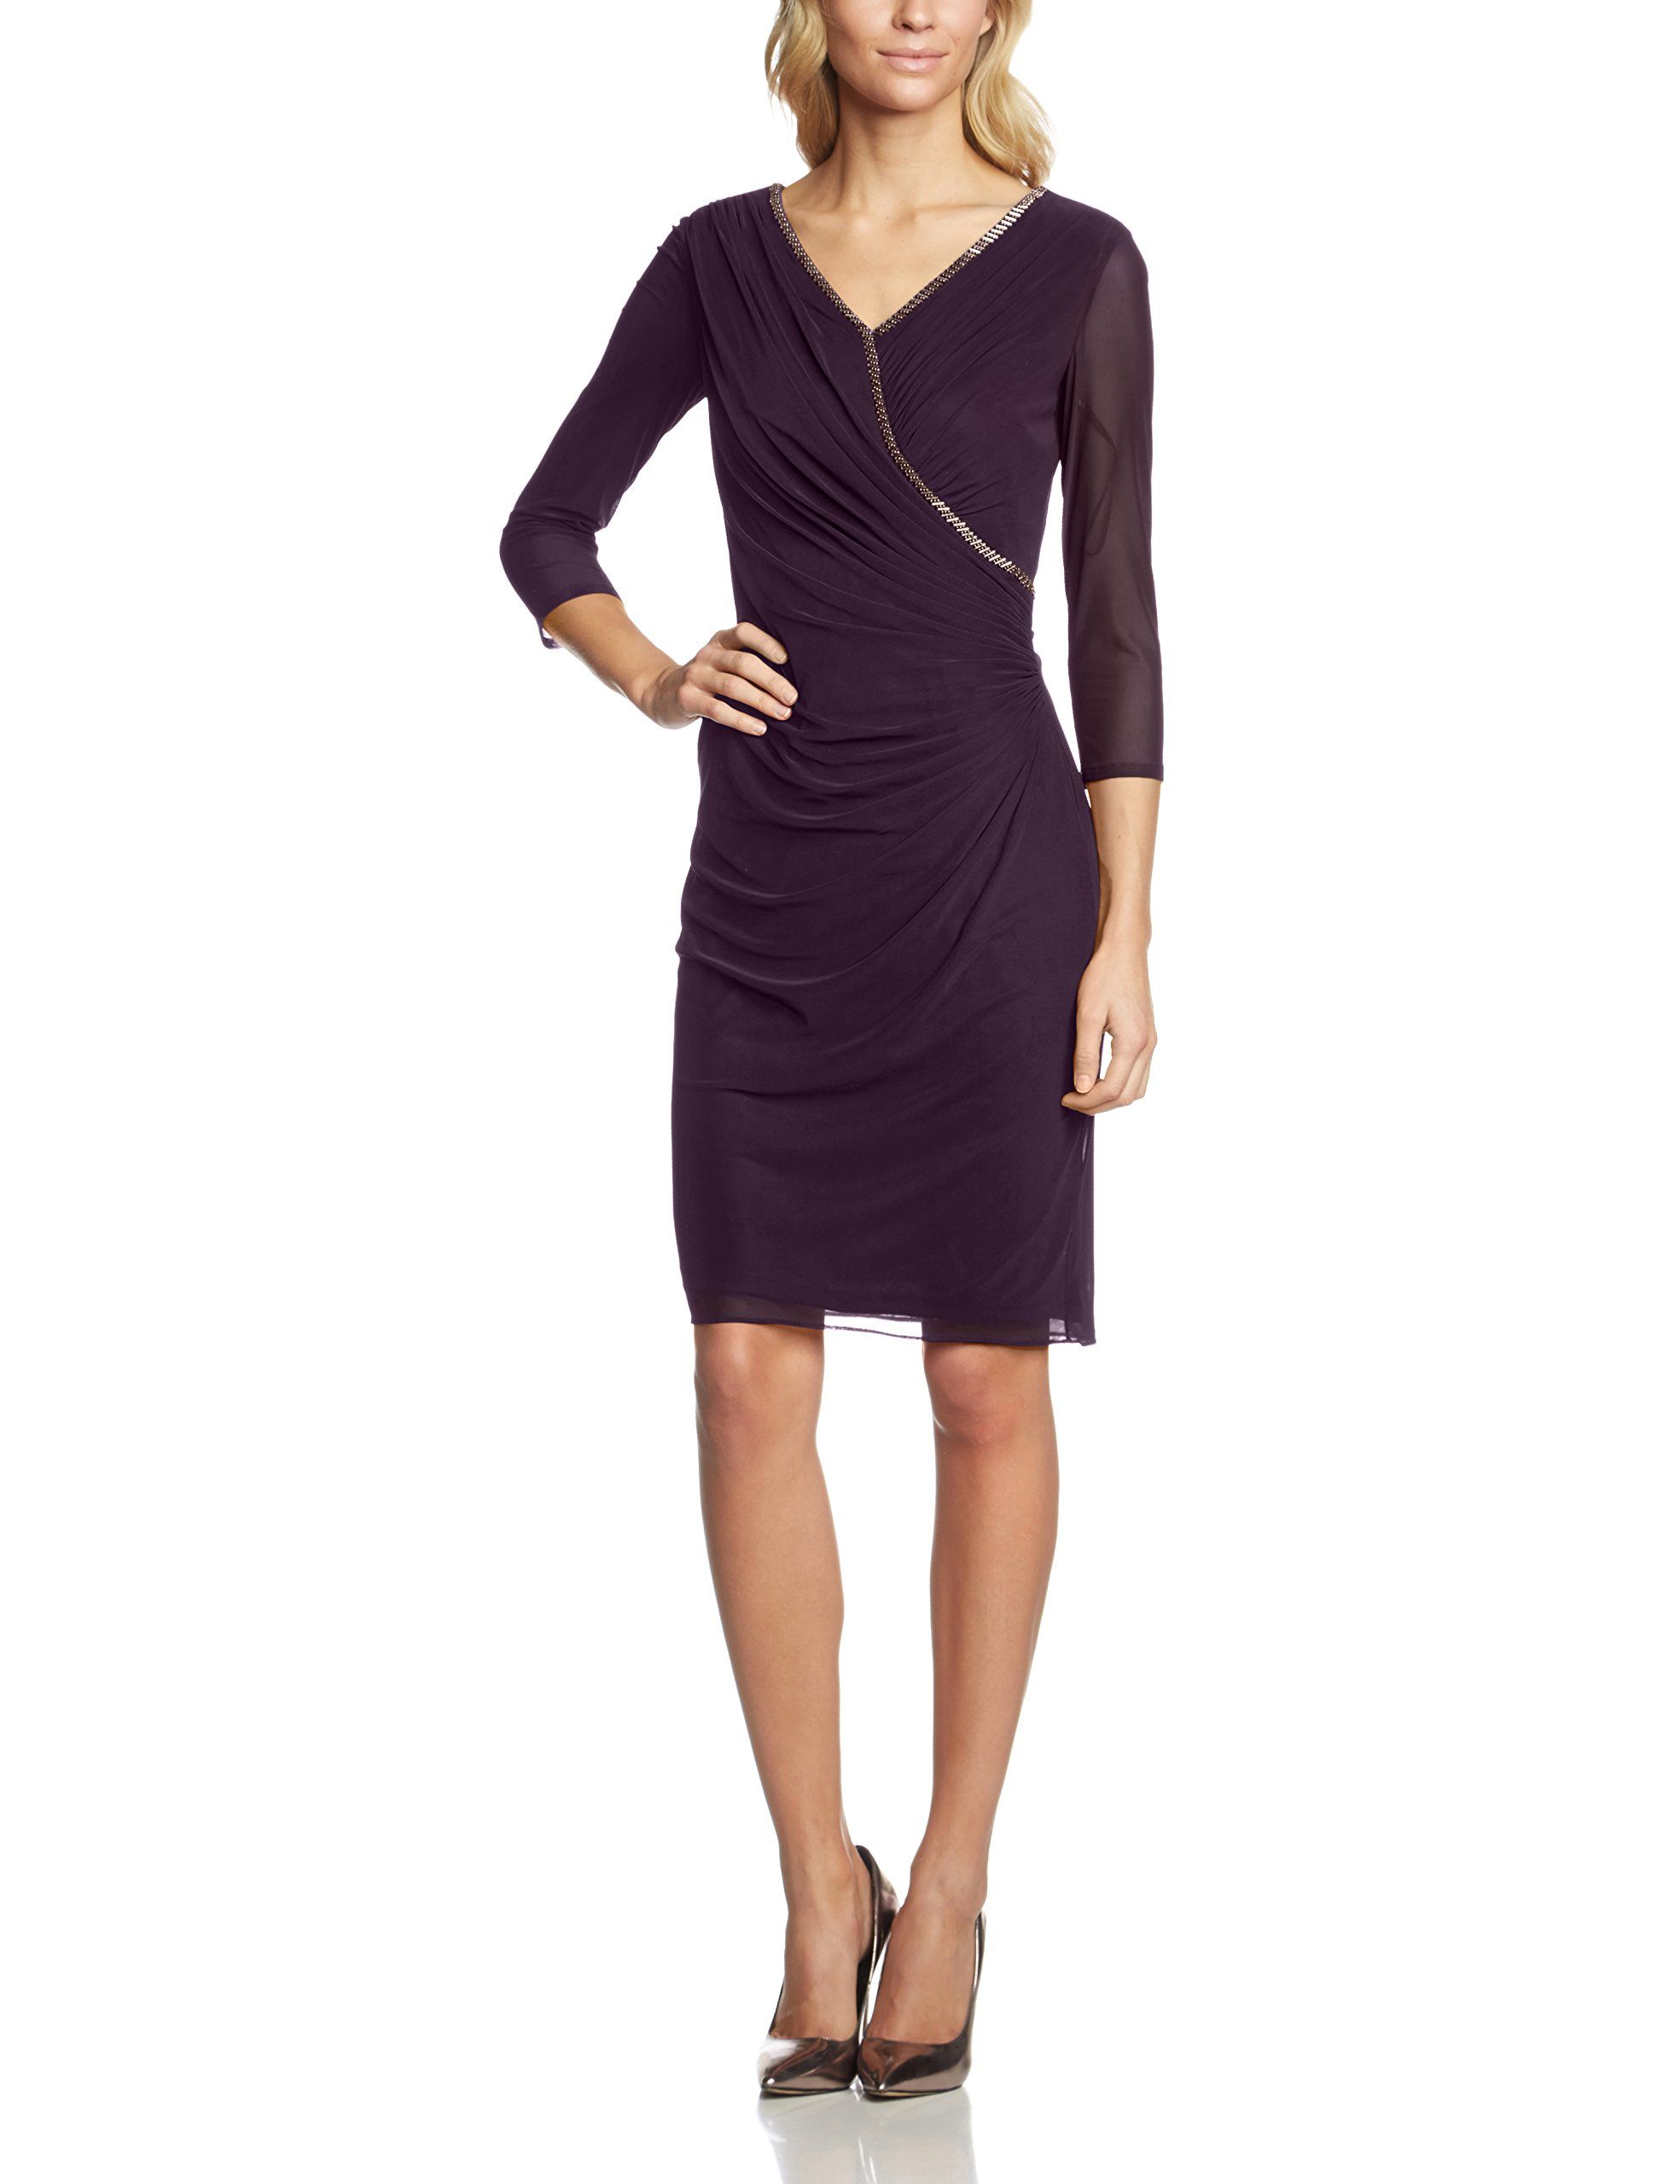 Vera mont cocktailkleid amazon